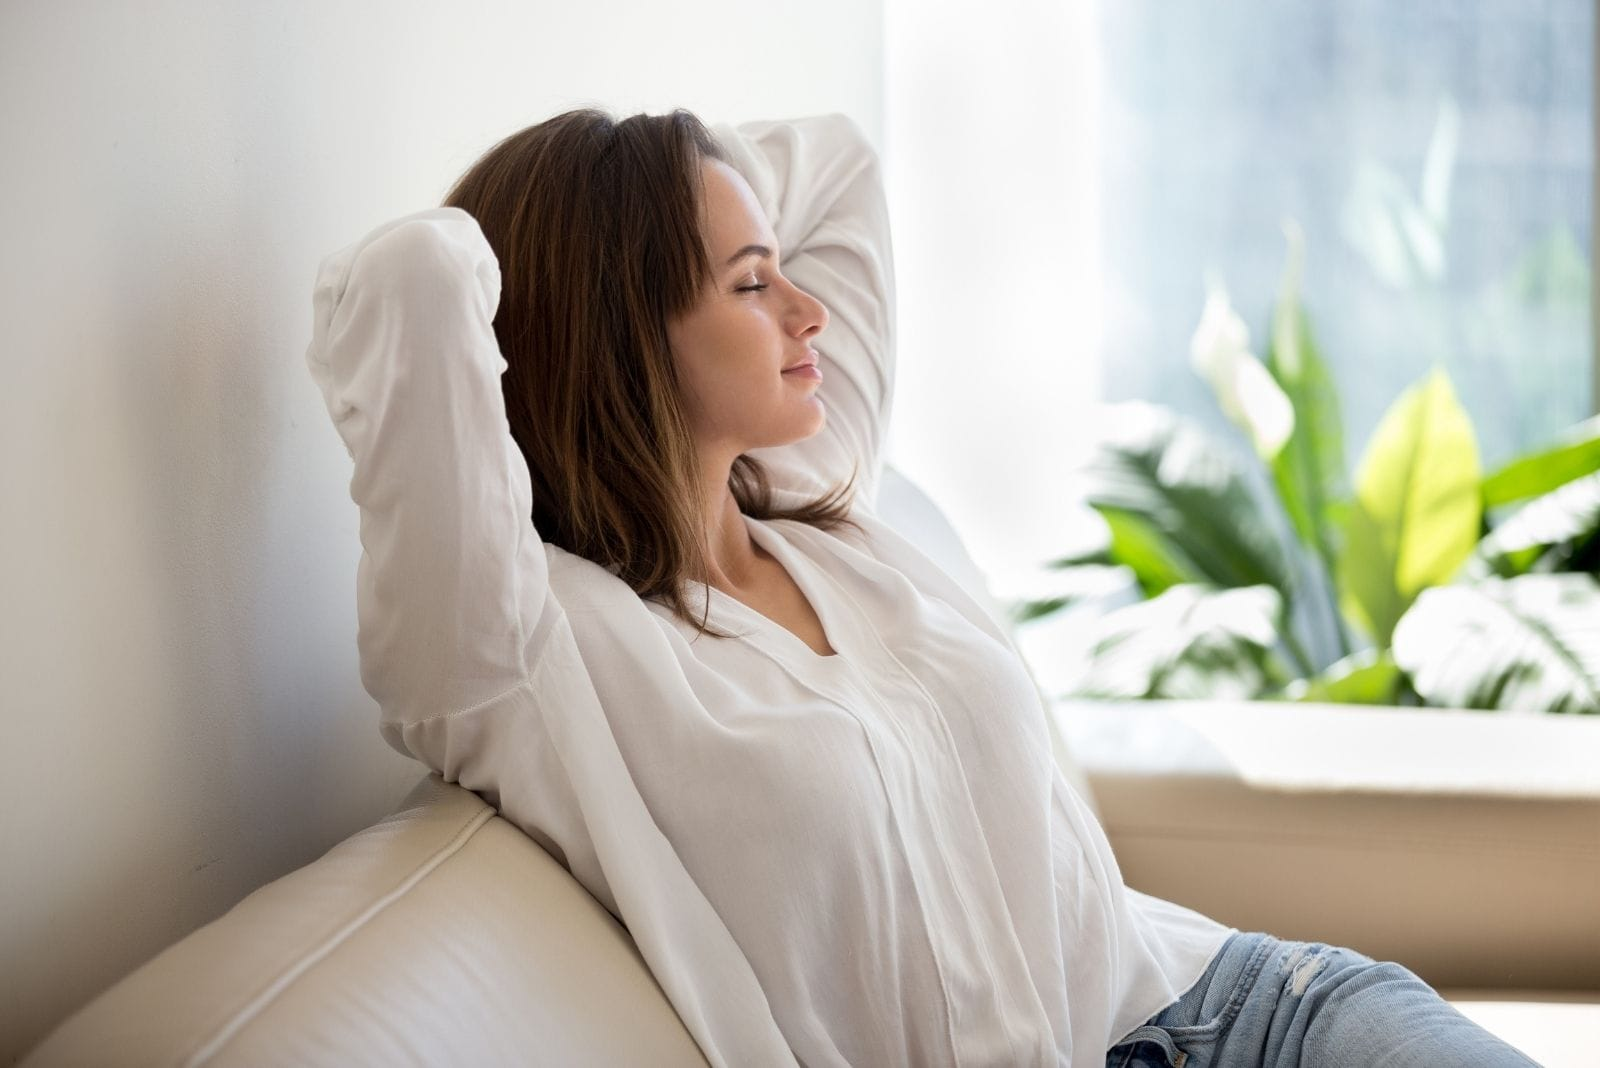 peaceful calm woman sitting on the couch while hands on her head